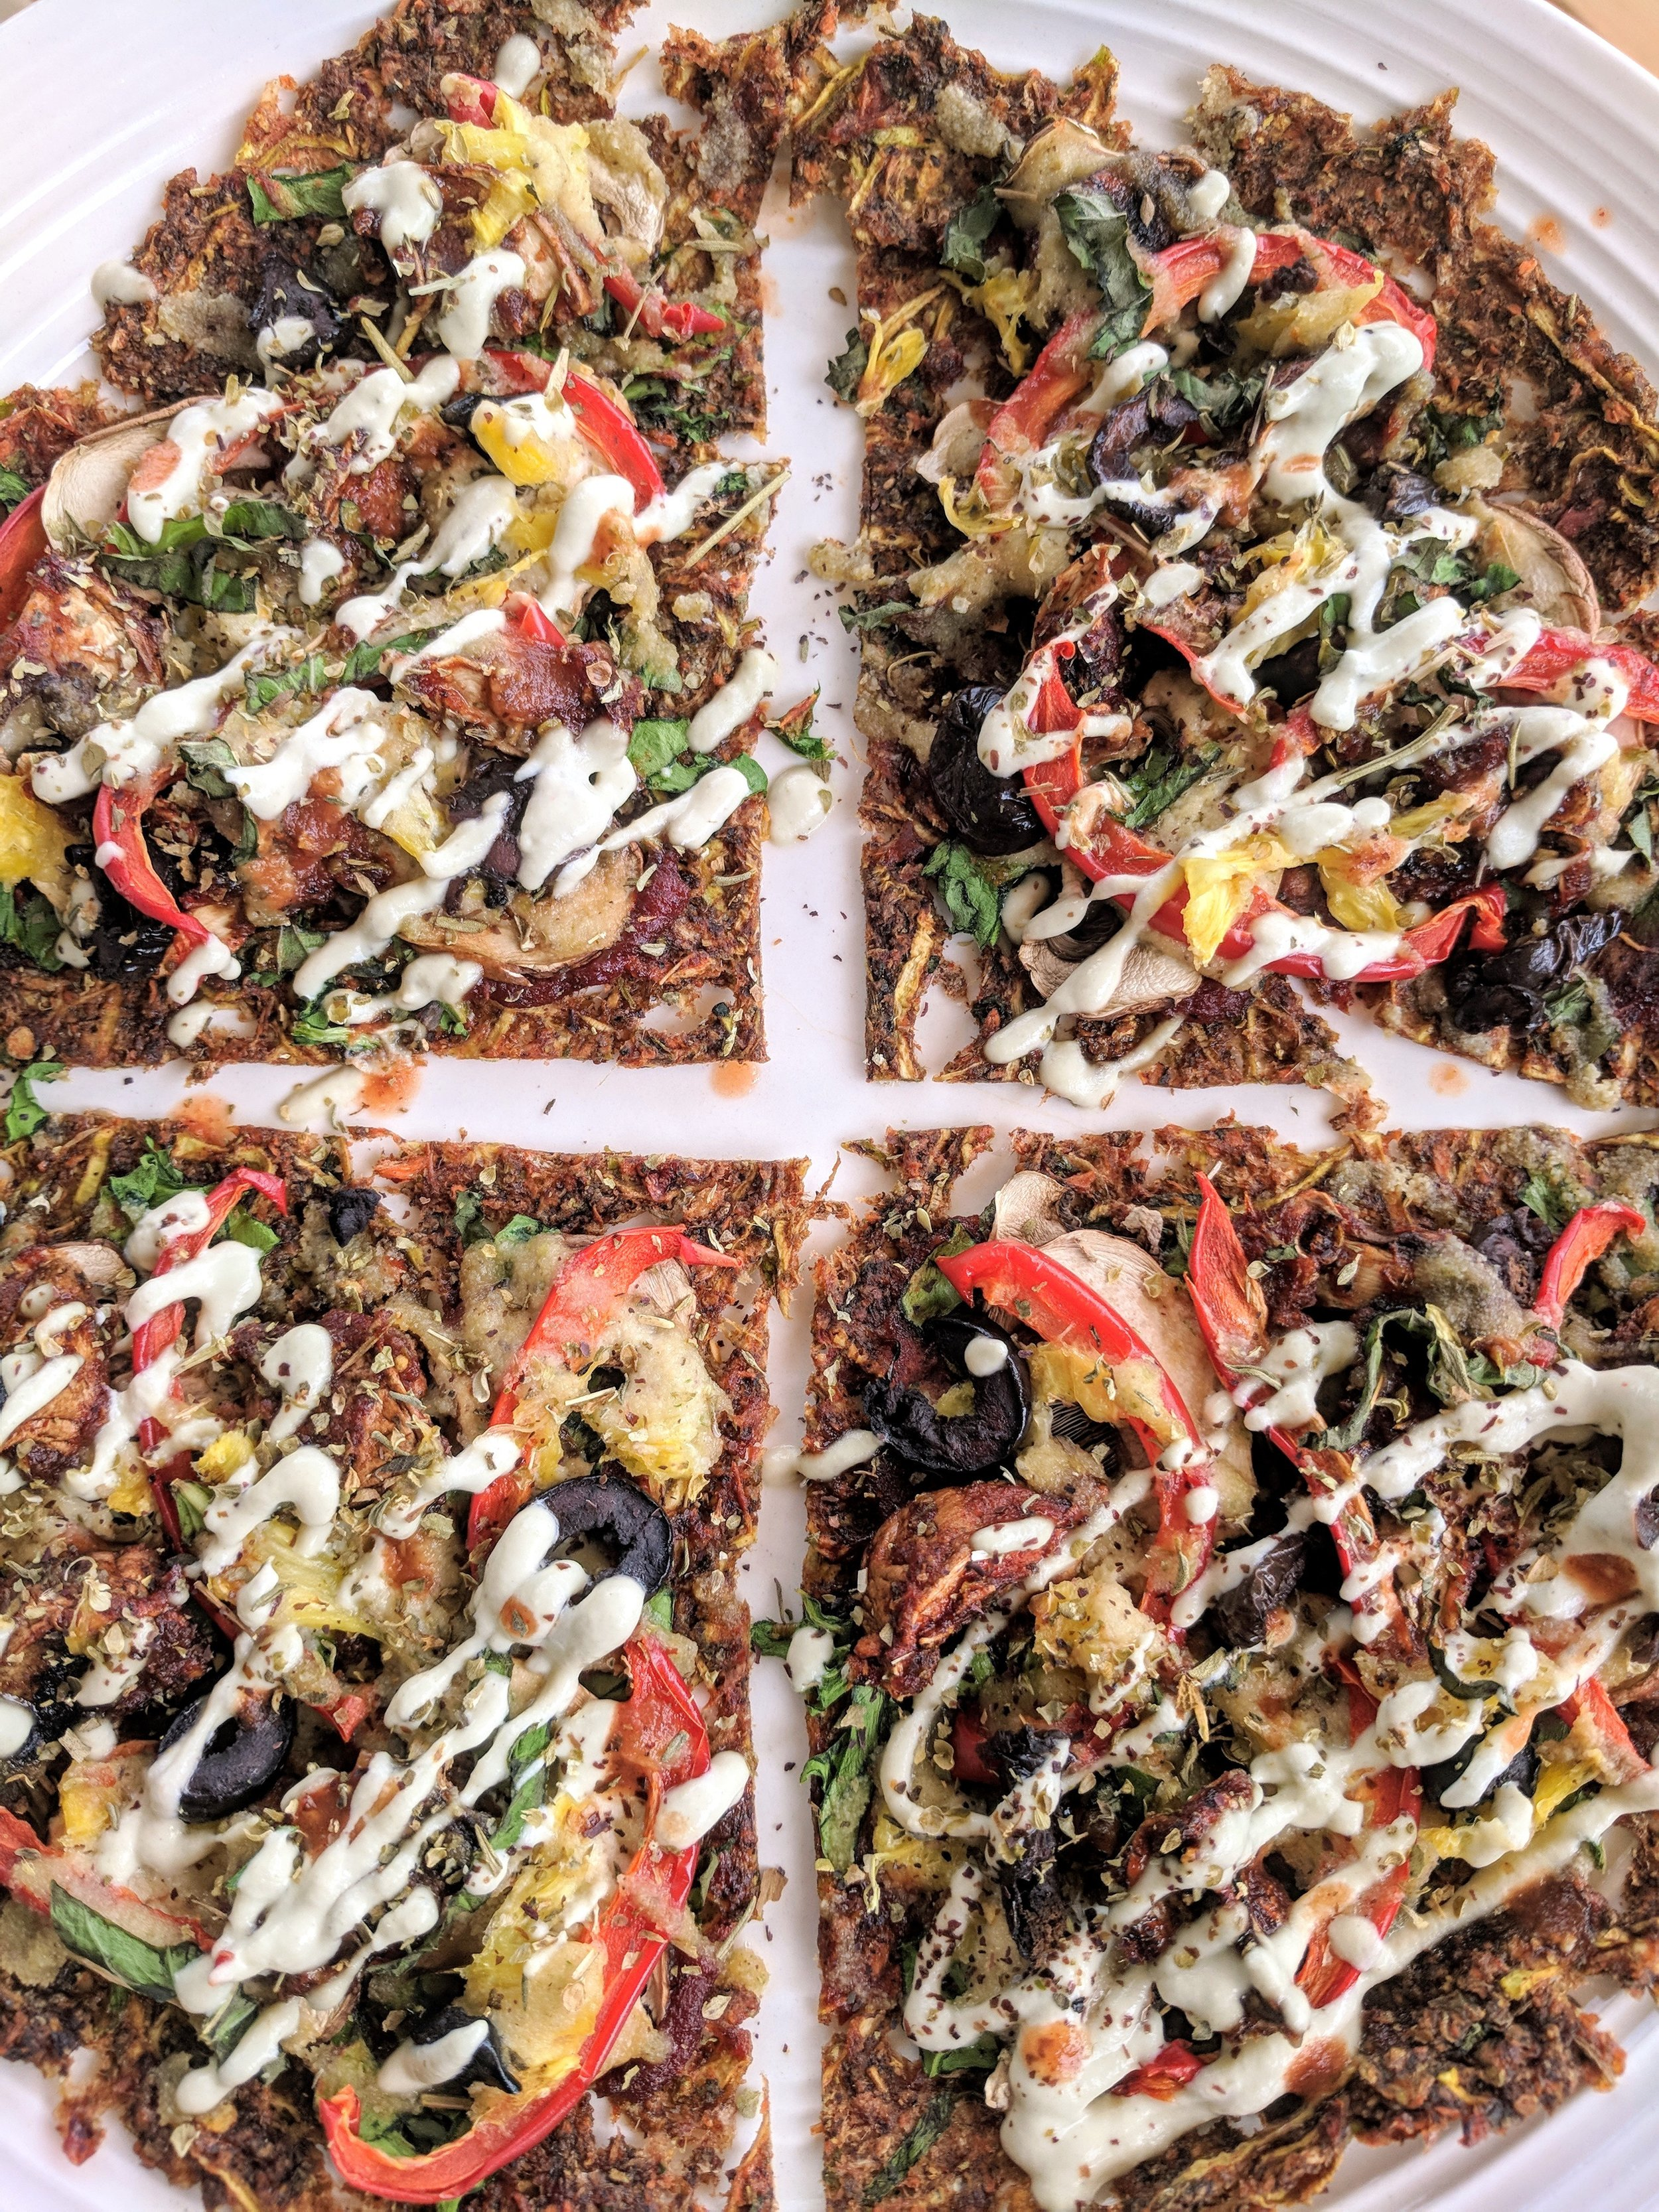 bbq mushroom and pineapple pizza 2.jpg